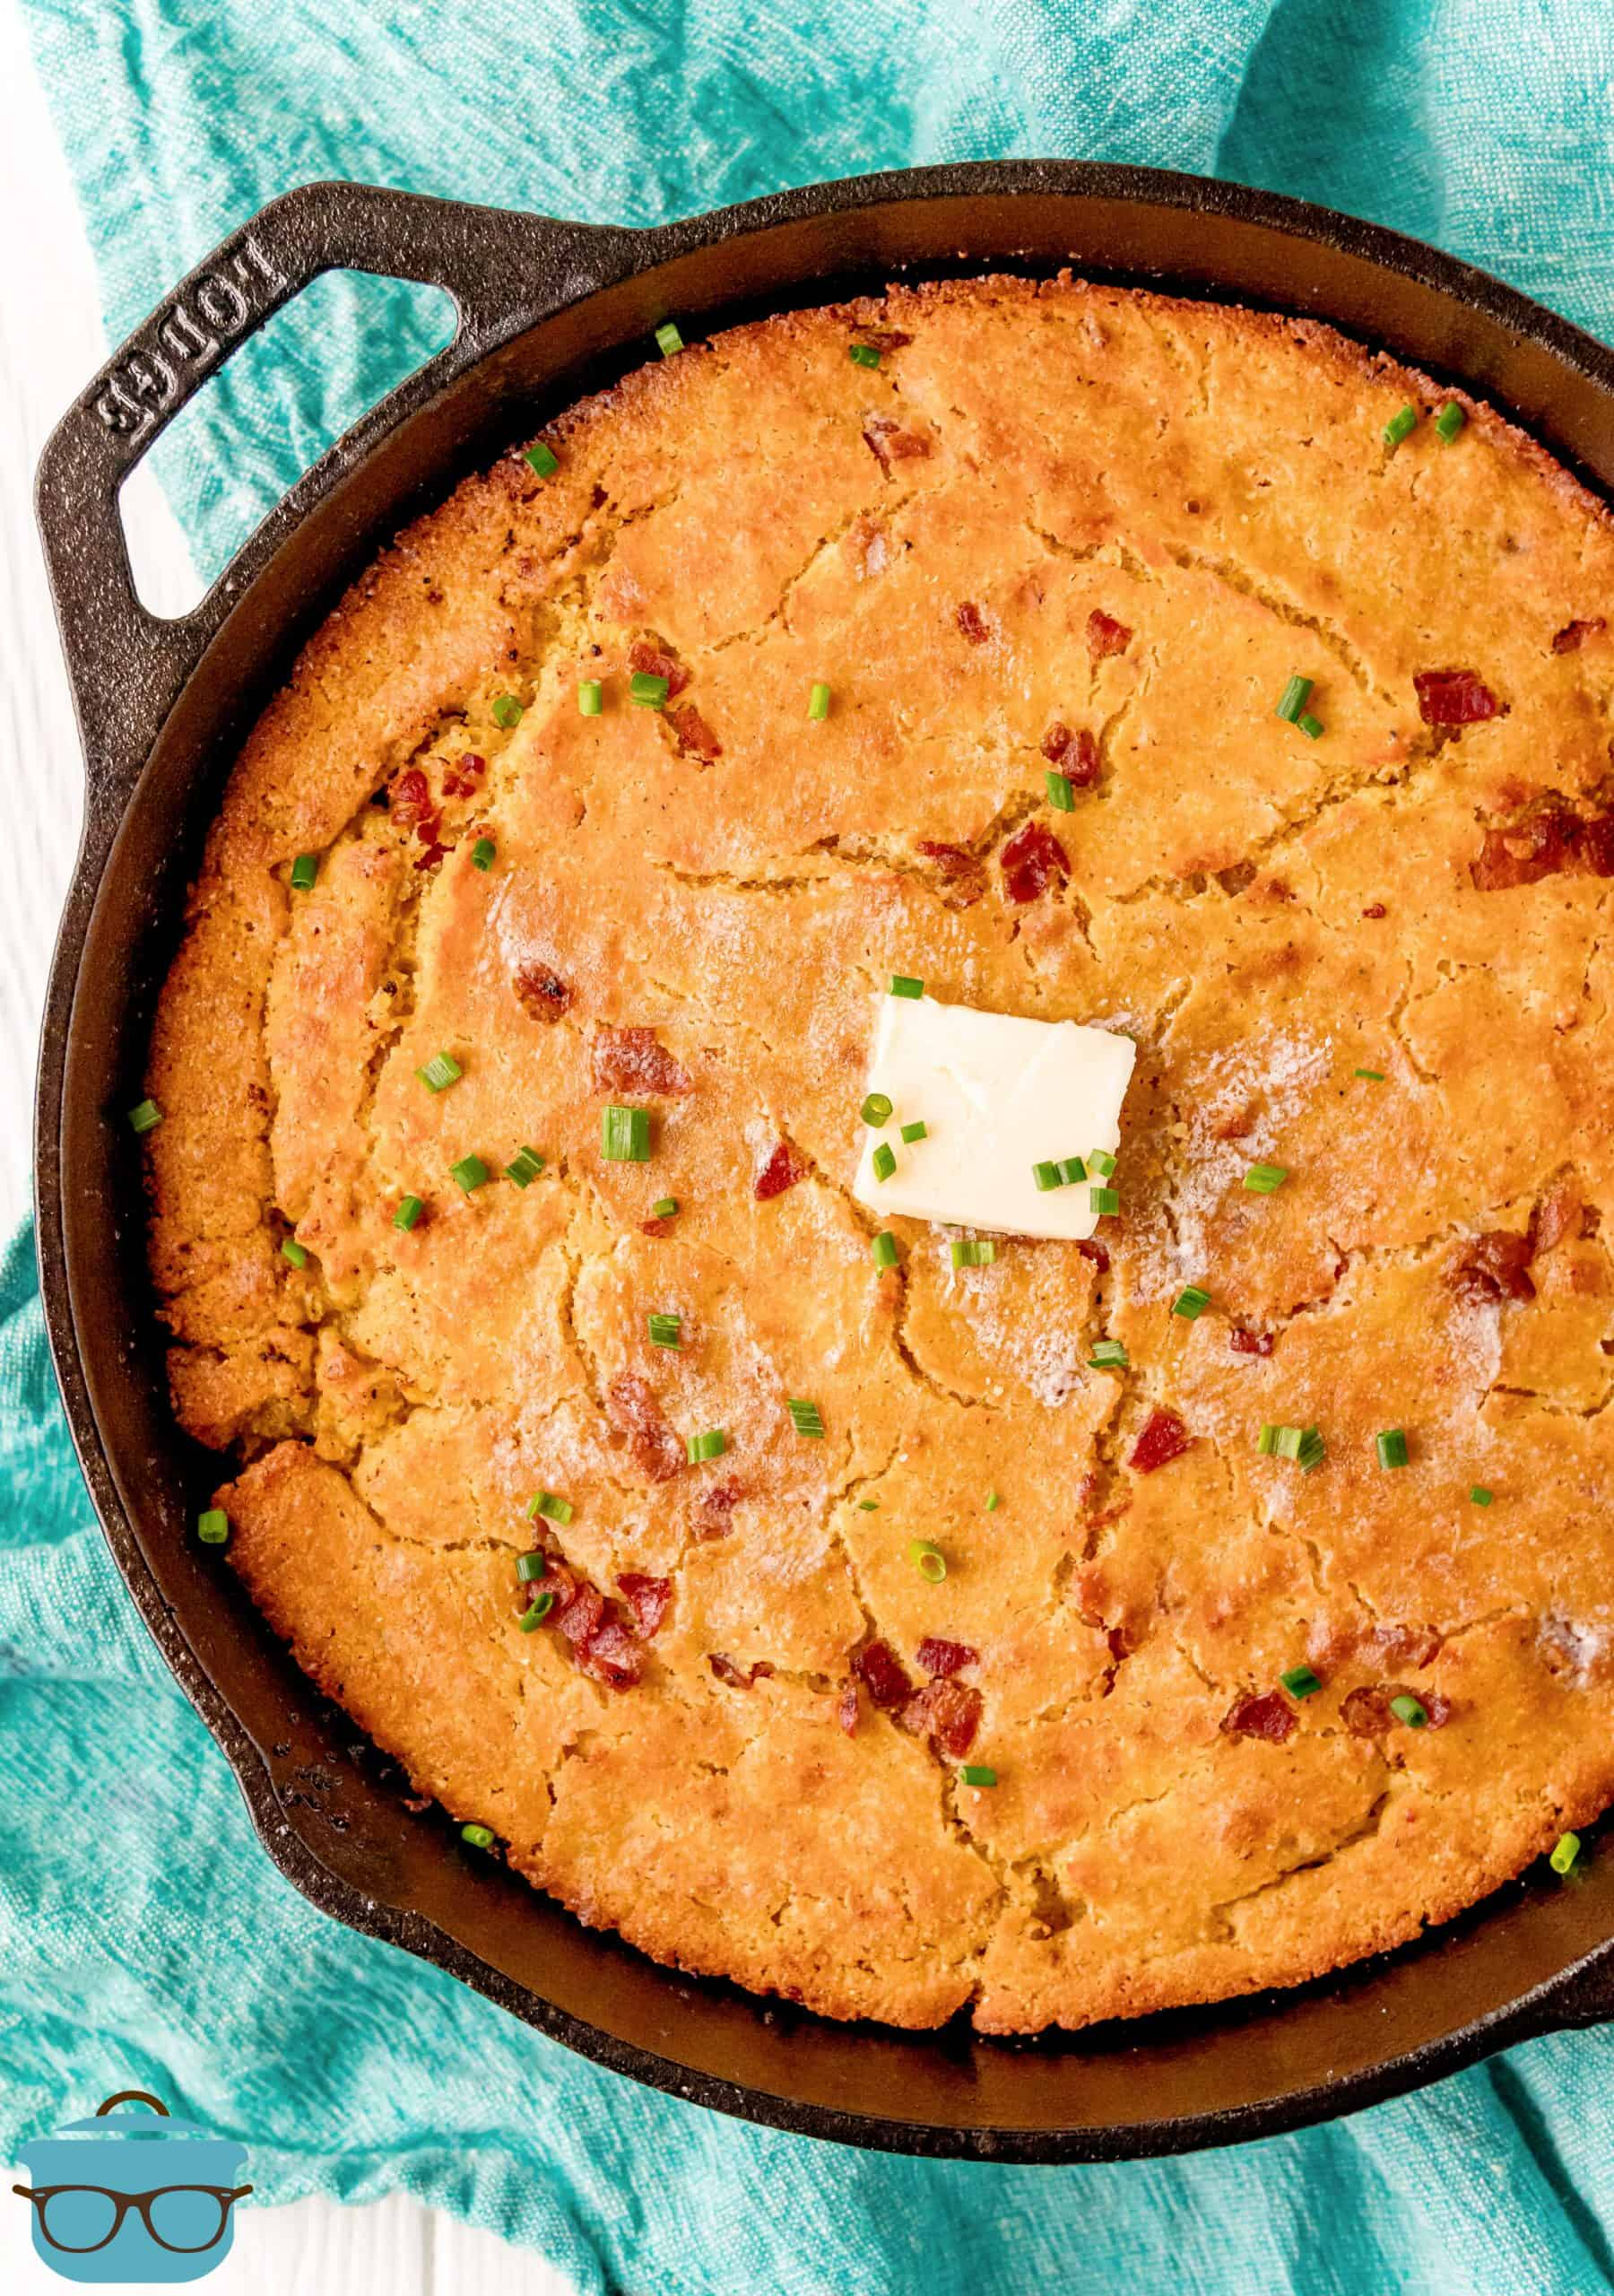 fully baked bacon cornbread in a cast iron skillet with a pat of butter on top